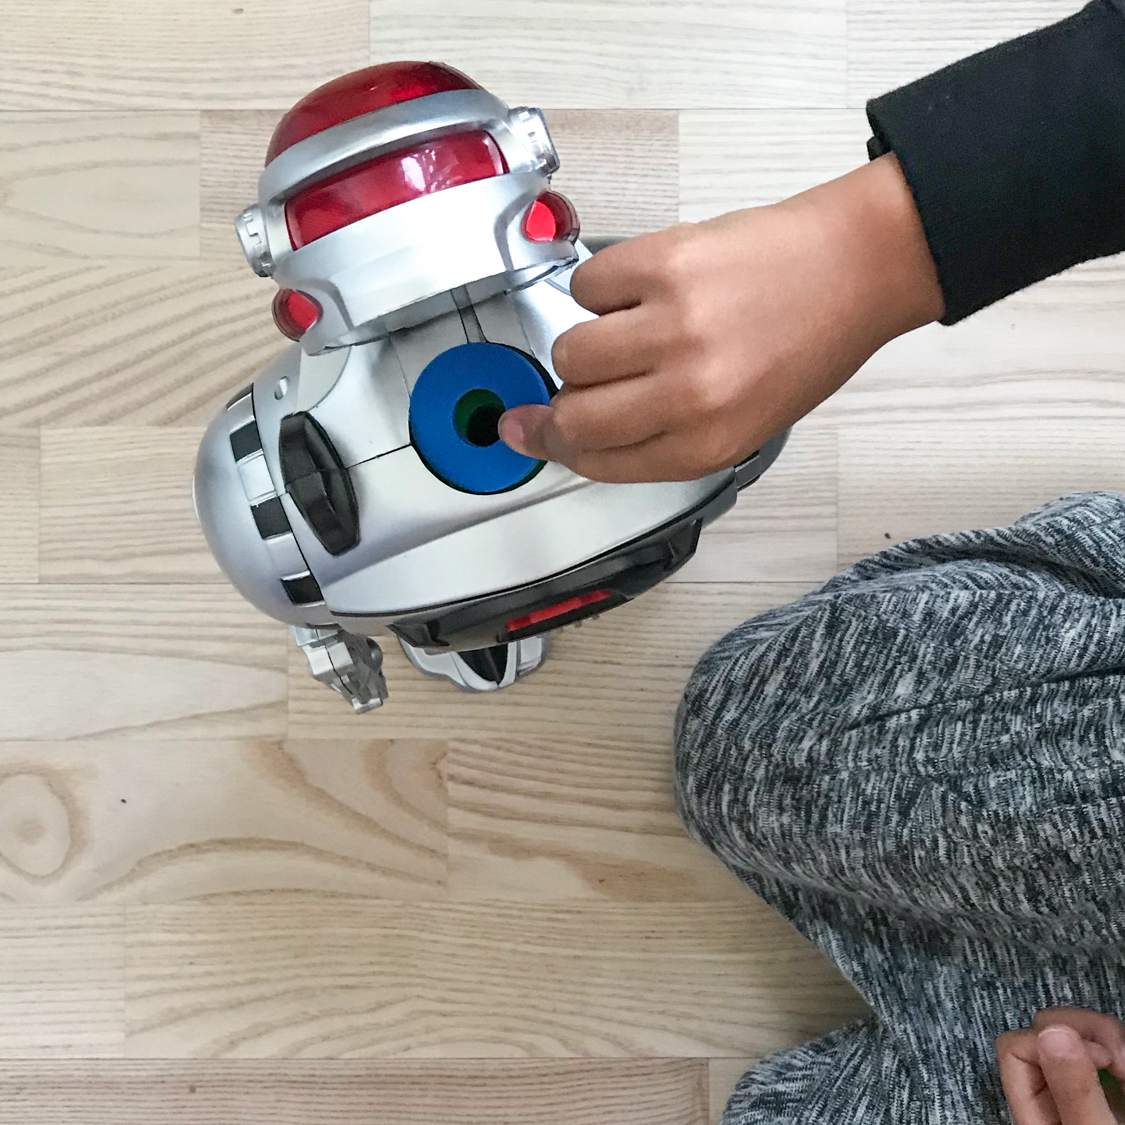 The 8 Best Robot Toys of 2019